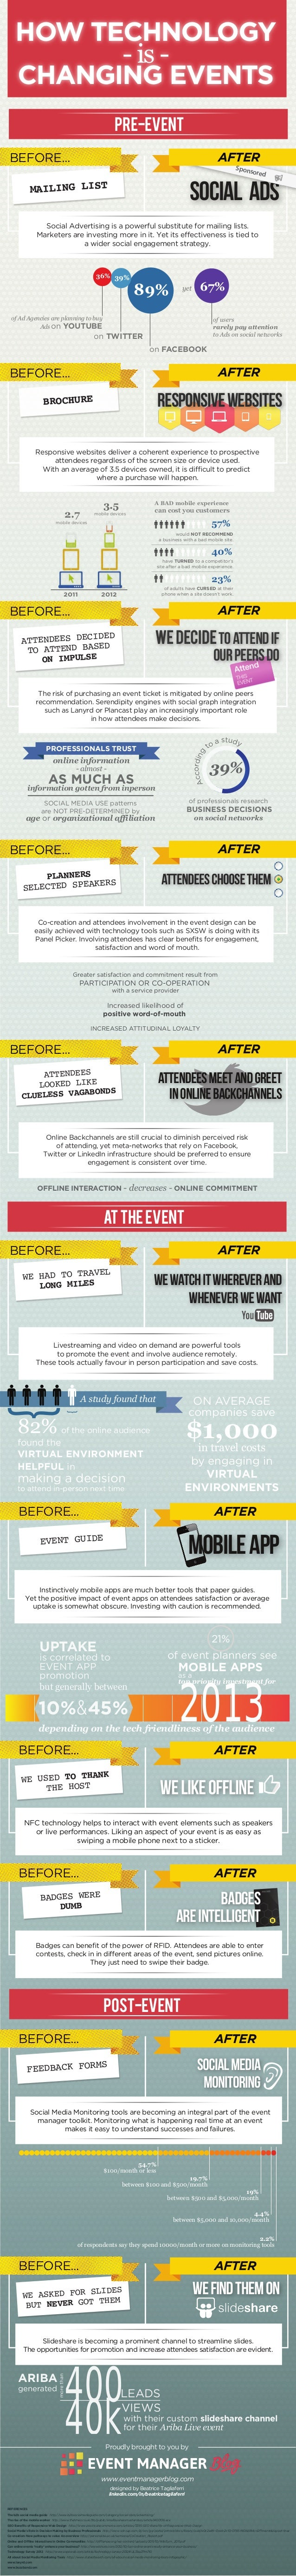 Event Technology Infographic